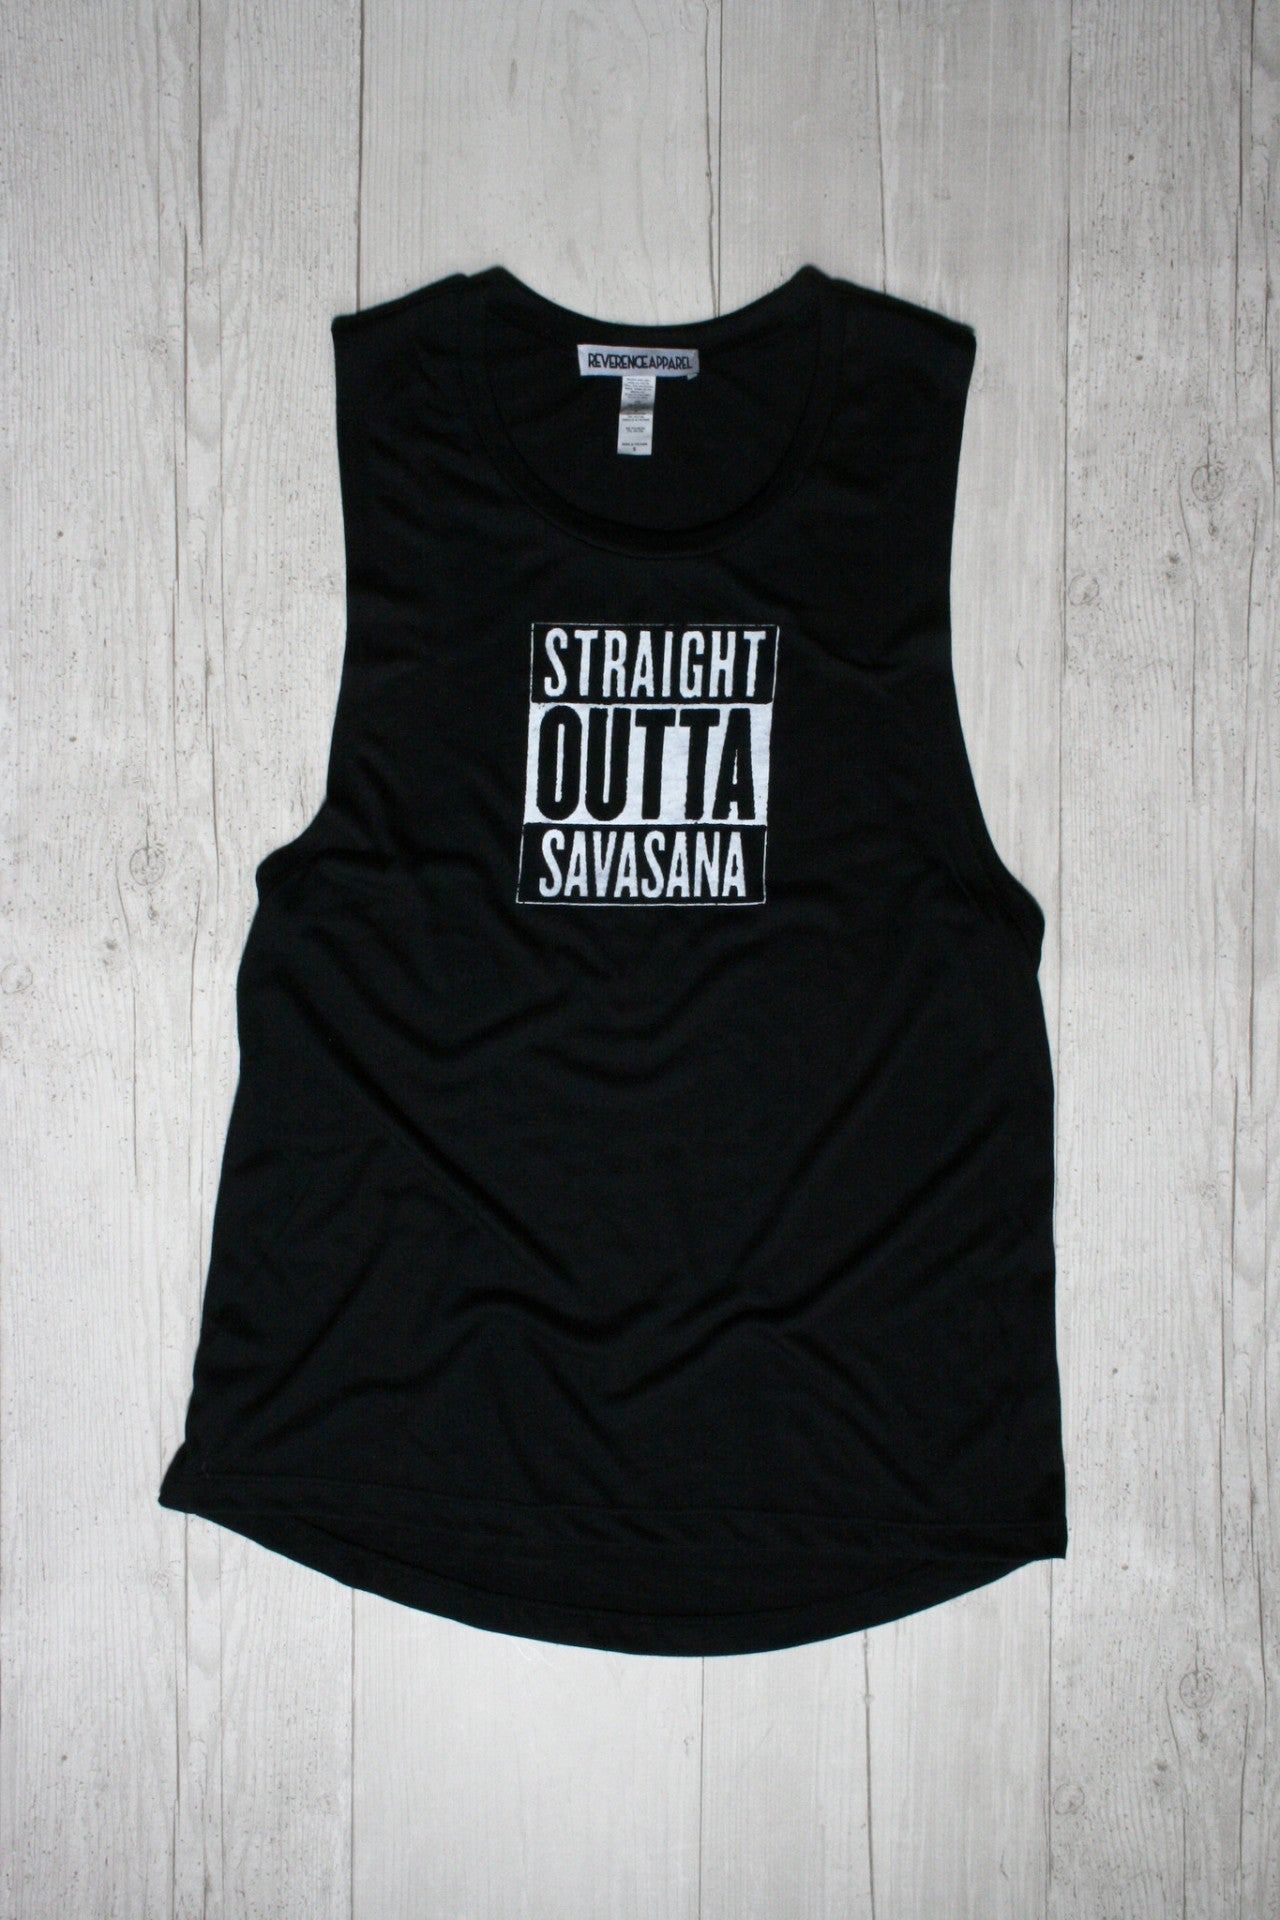 STRAIGHT OUTTA SAVANNA GRAPHIC YOGA TEE REVERENCE APPAREL